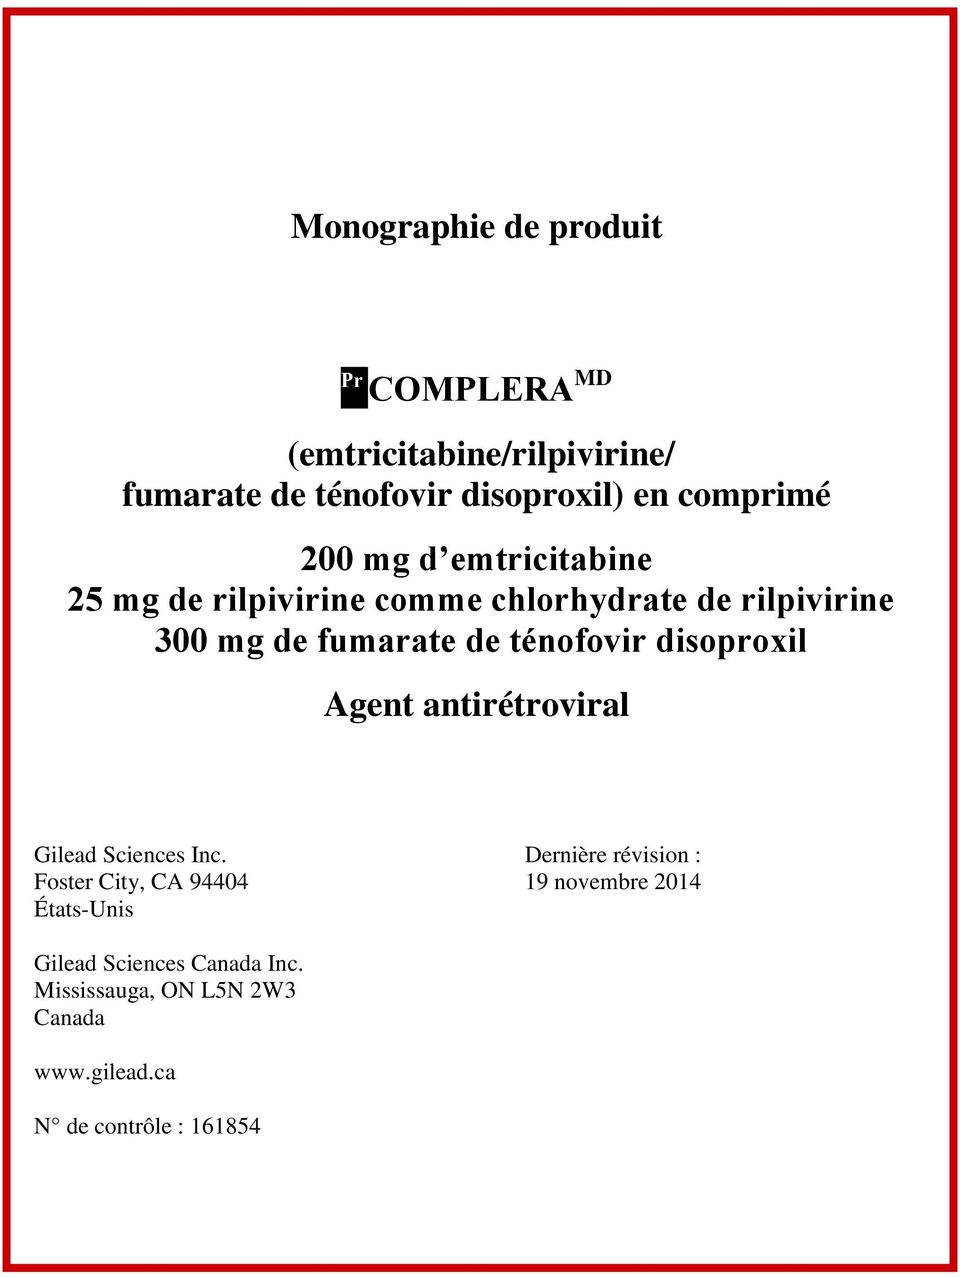 disoproxil Agent antirétroviral Gilead Sciences Inc.